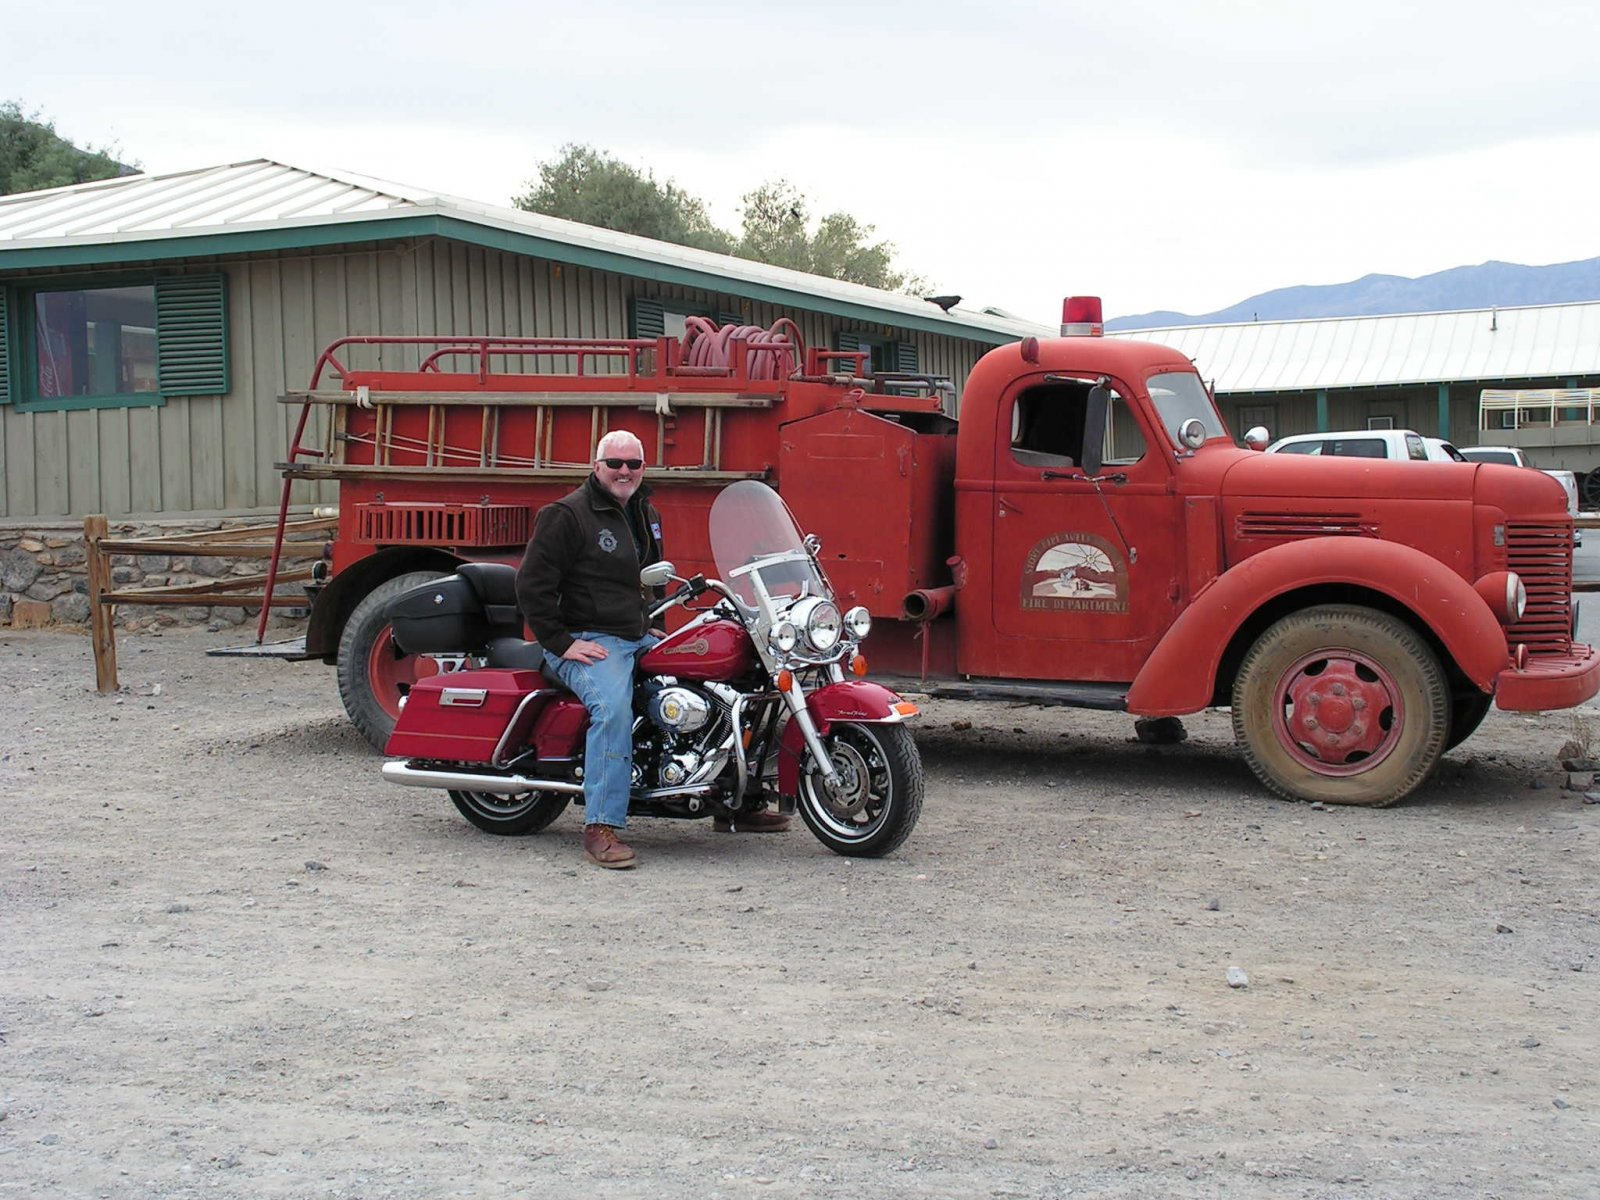 Click image for larger version  Name:Death Valley Fire Dept.jpg Views:61 Size:356.2 KB ID:115979